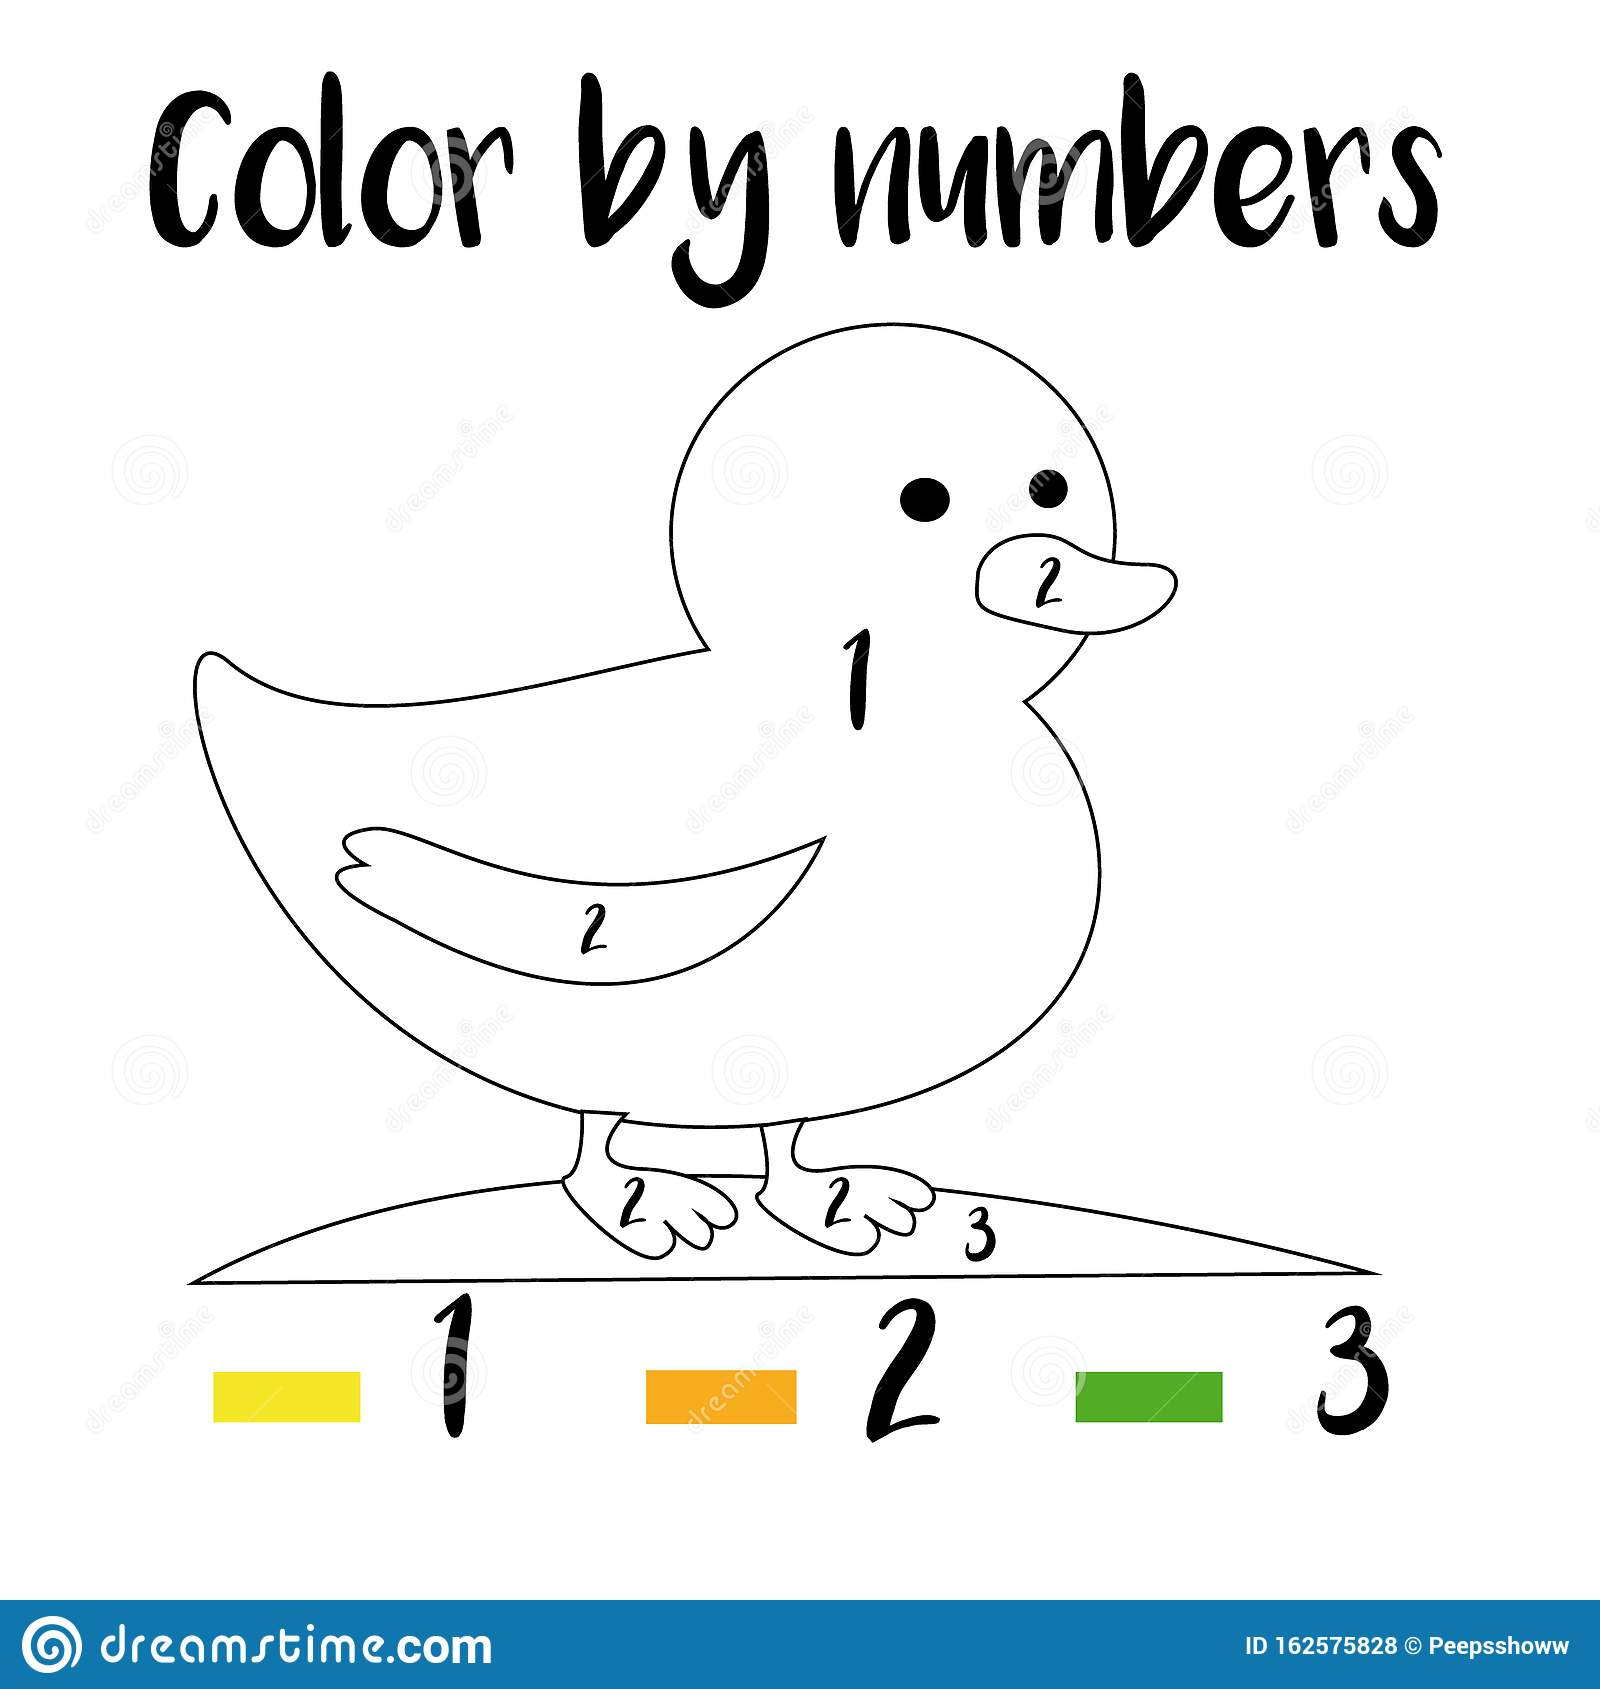 Color By Numbers Printable Worksheet Educational Game